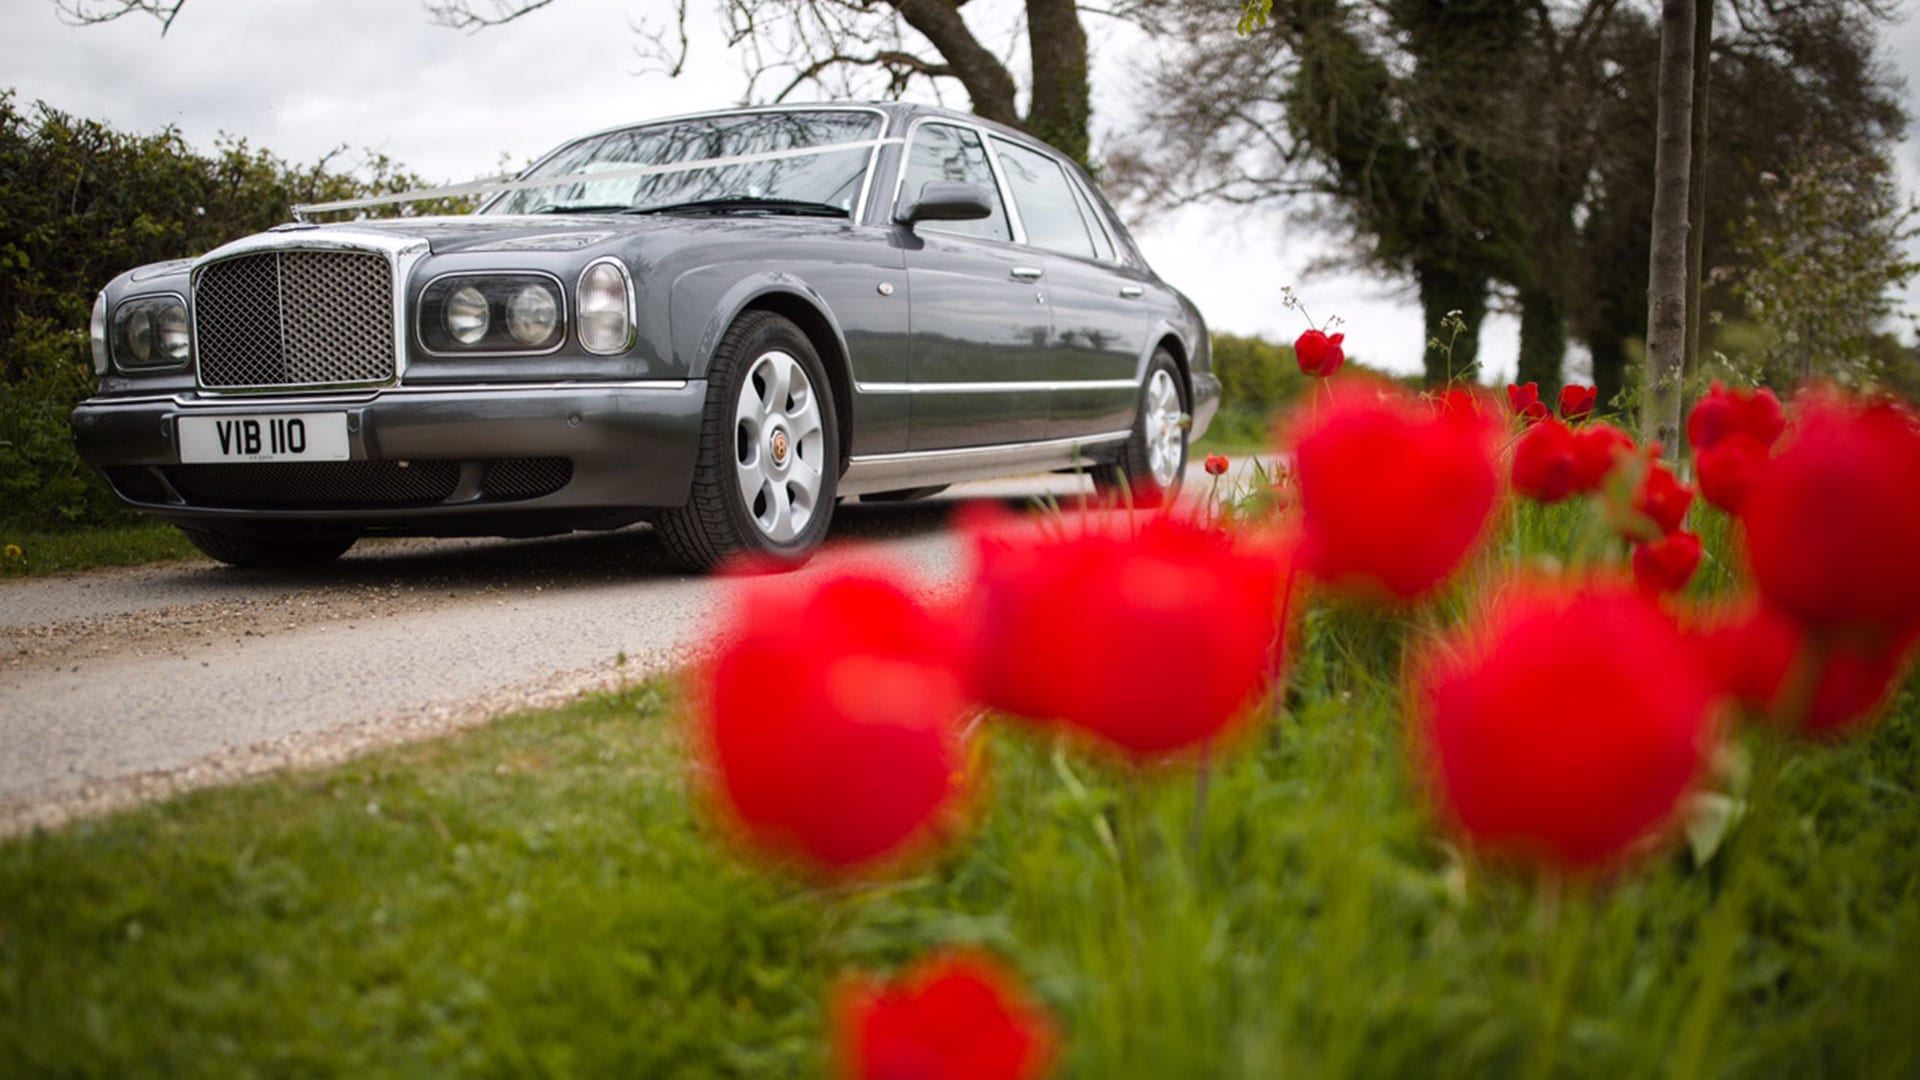 Azure's Bentley Arnage wedding car